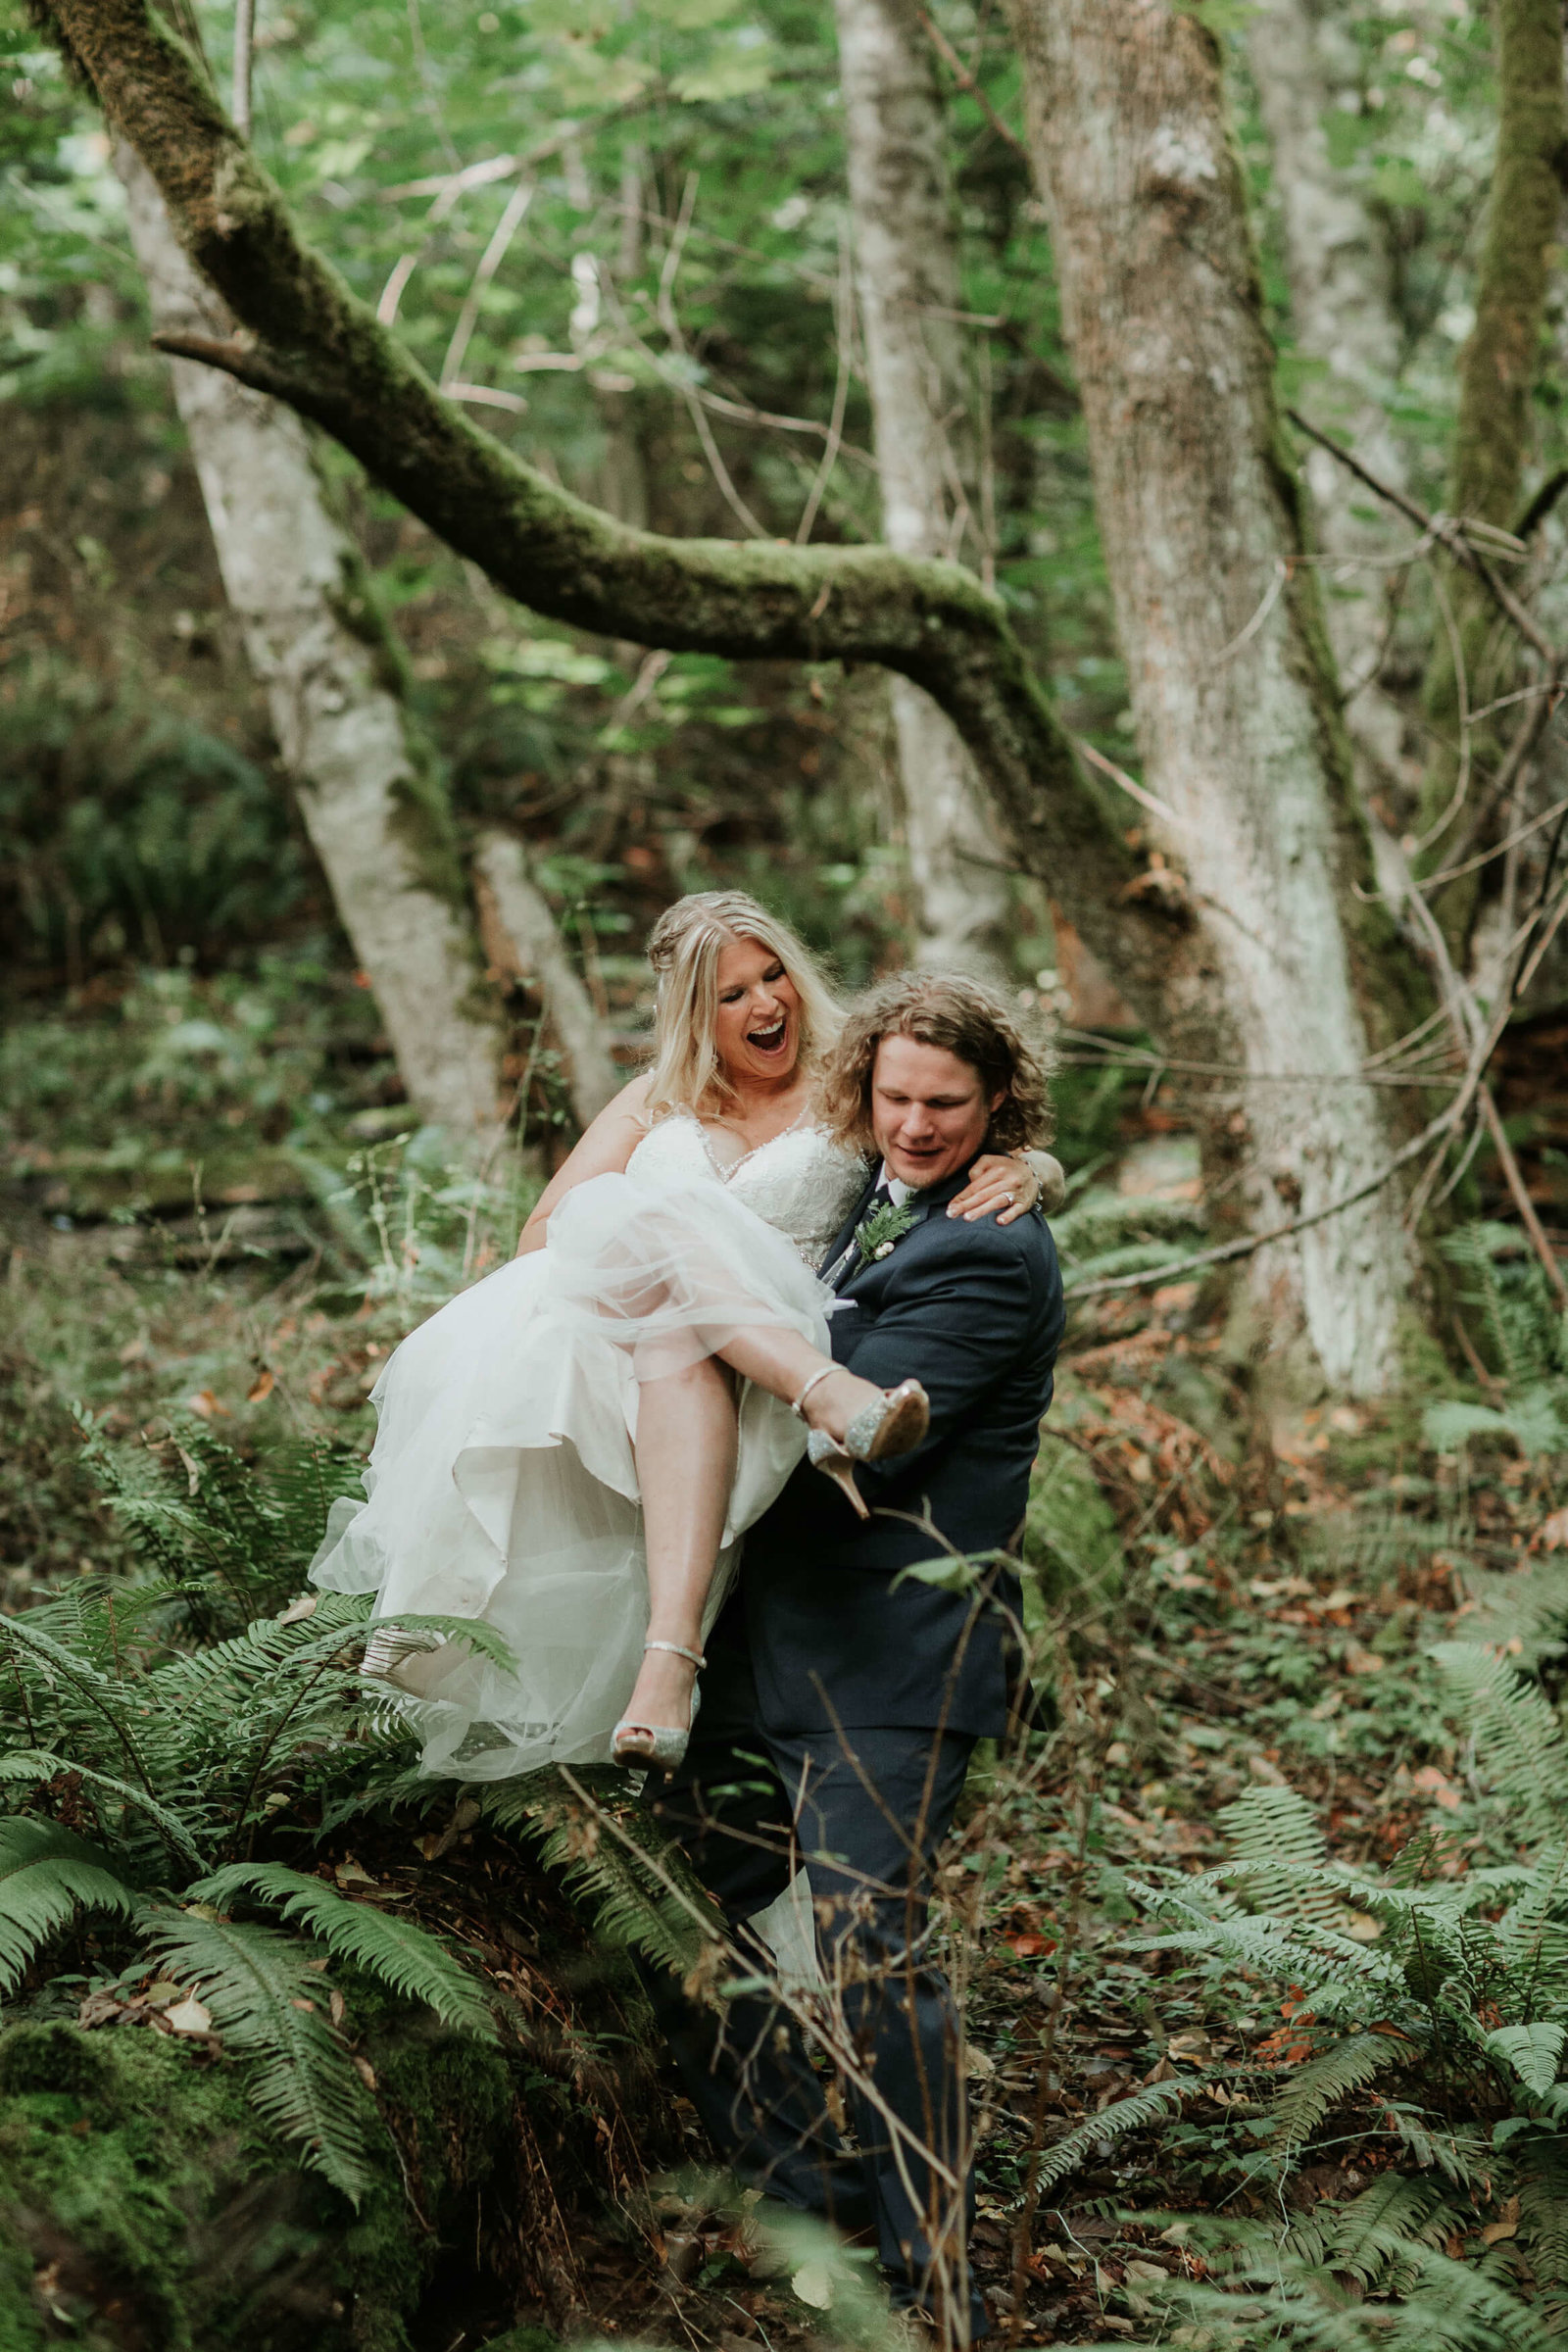 Orcas-island-wedding-katherine&robin-adina-preston-weddings-9-22-2018-APW-H874